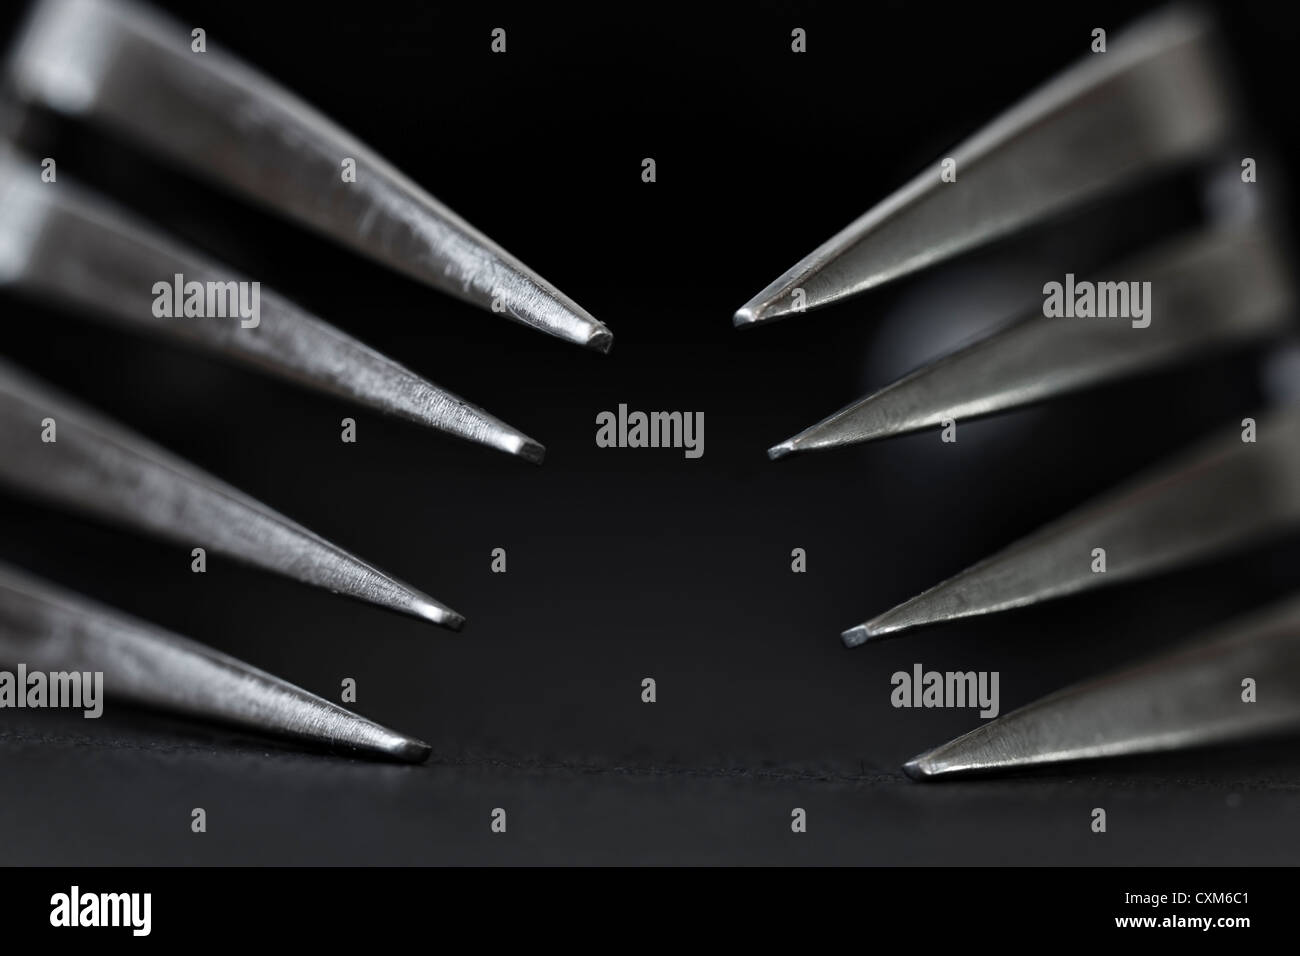 Fork Tines - pointing inward - Stock Image